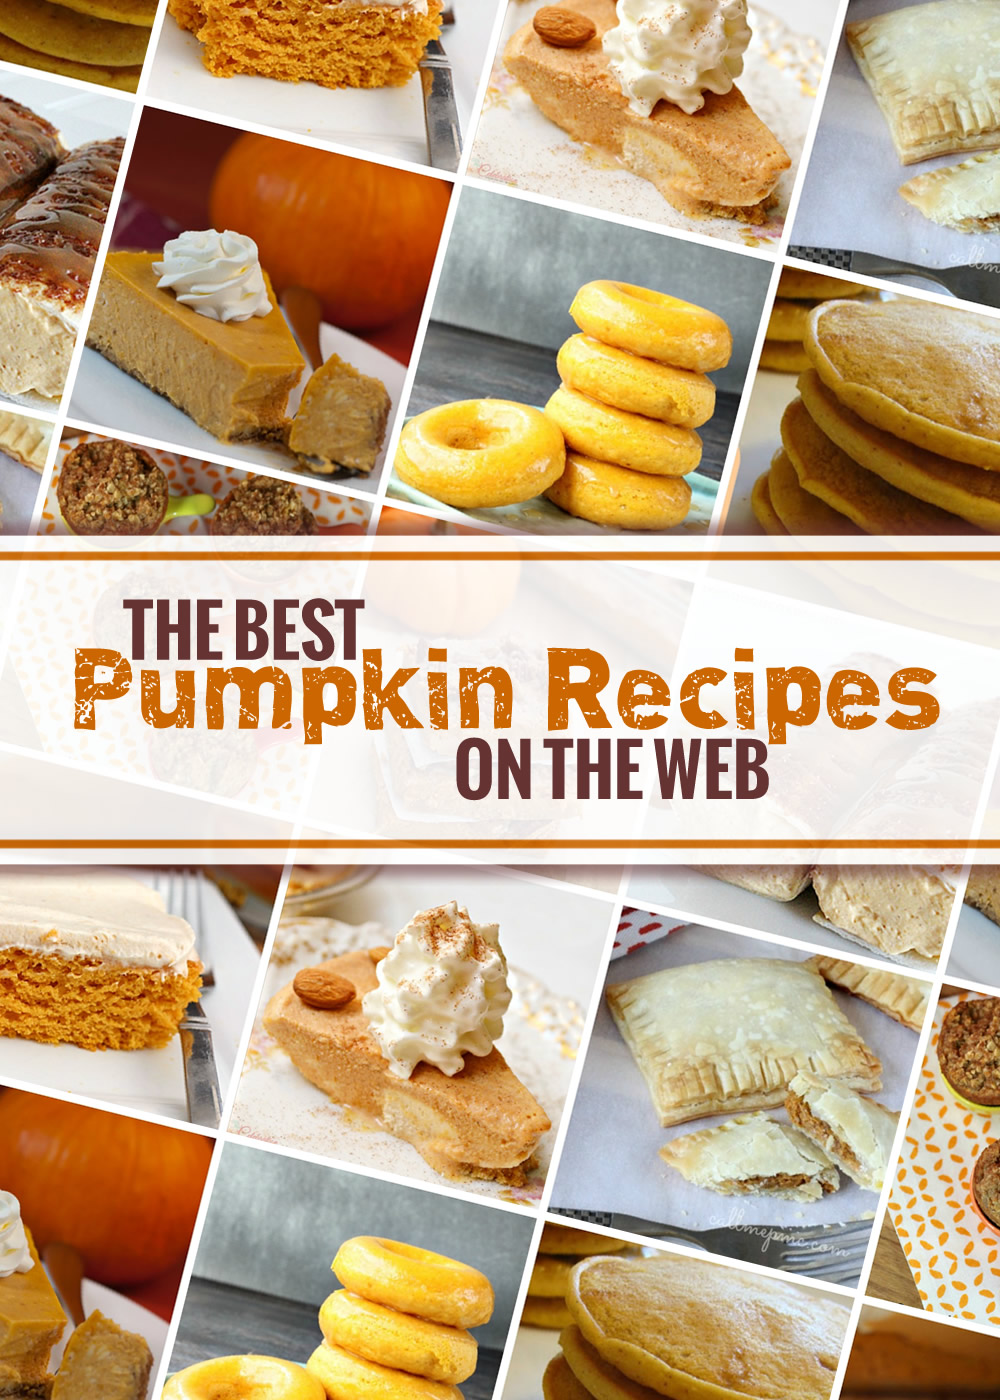 15 of the best pumpkin recipes for fall!